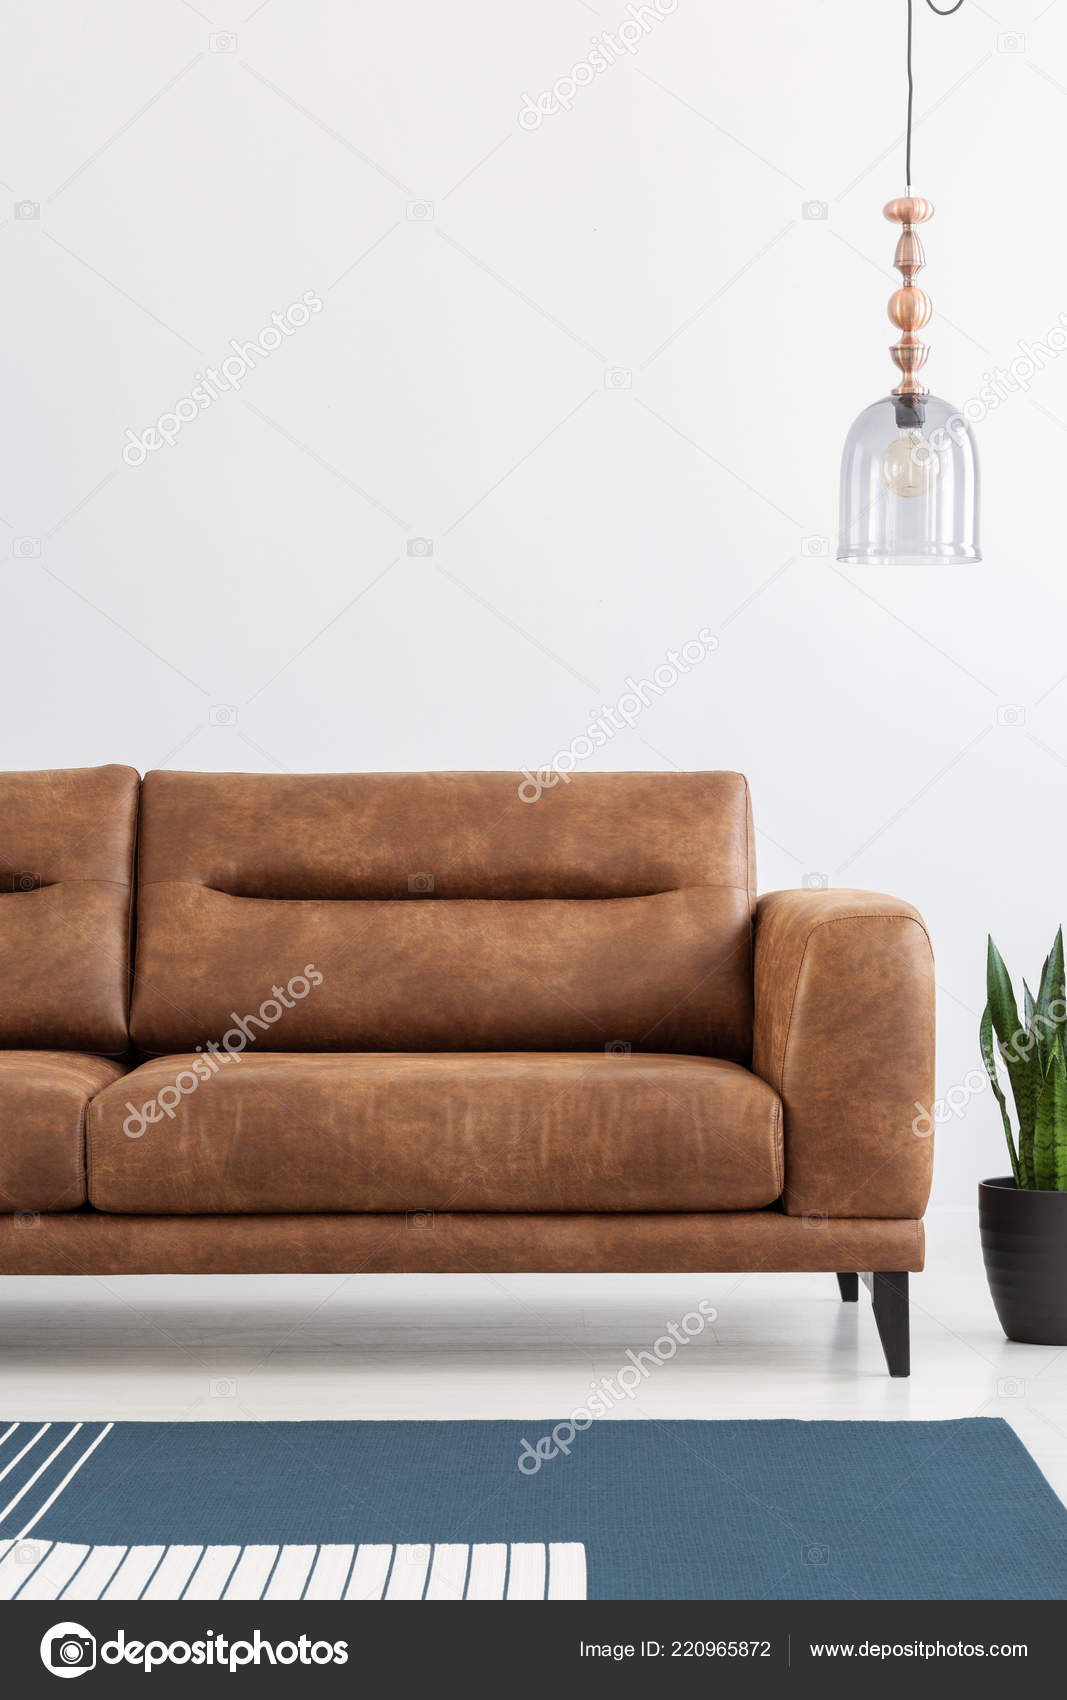 Admirable Big Comfy Leather Chair Copy Space Big Brown Leather Sofa Beatyapartments Chair Design Images Beatyapartmentscom